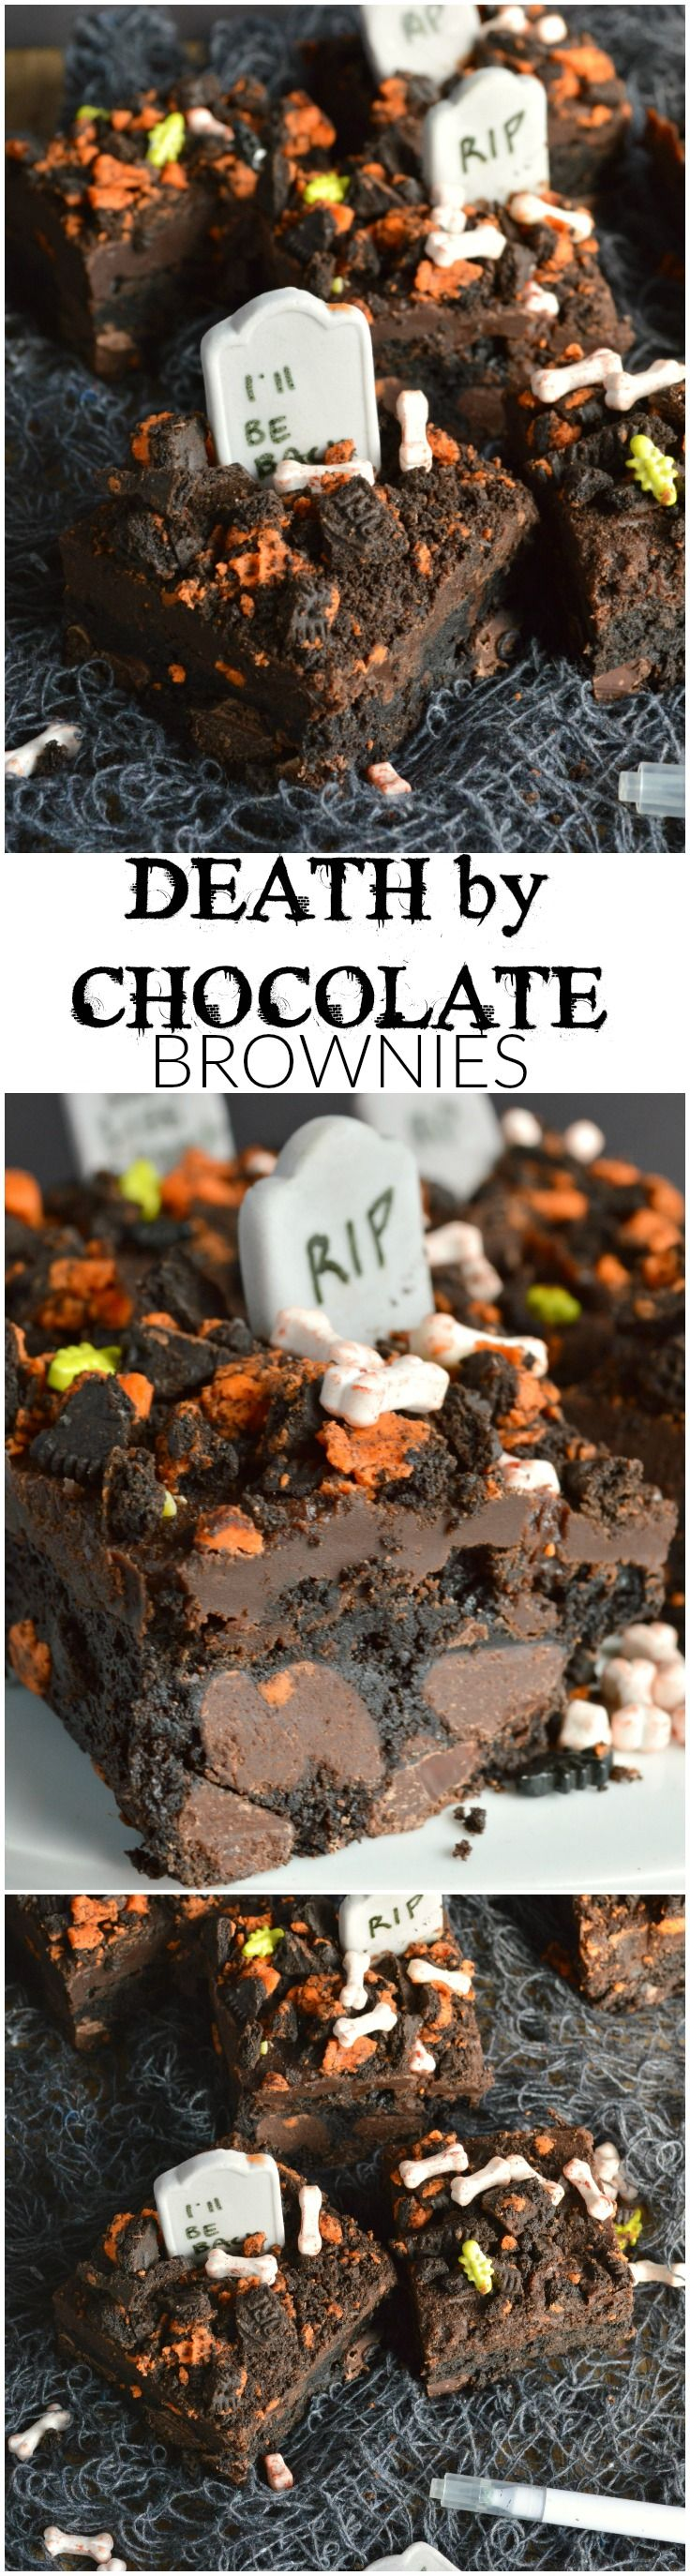 Death by Chocolate Brownies - what a way to go! Thick fudgy brownies are loaded with chocolate chunks, topped with rich chocolate ganache and crushed Oreo cookies. These are all dressed up for Halloween, but they are sure to quell that chocolate craving all year round!